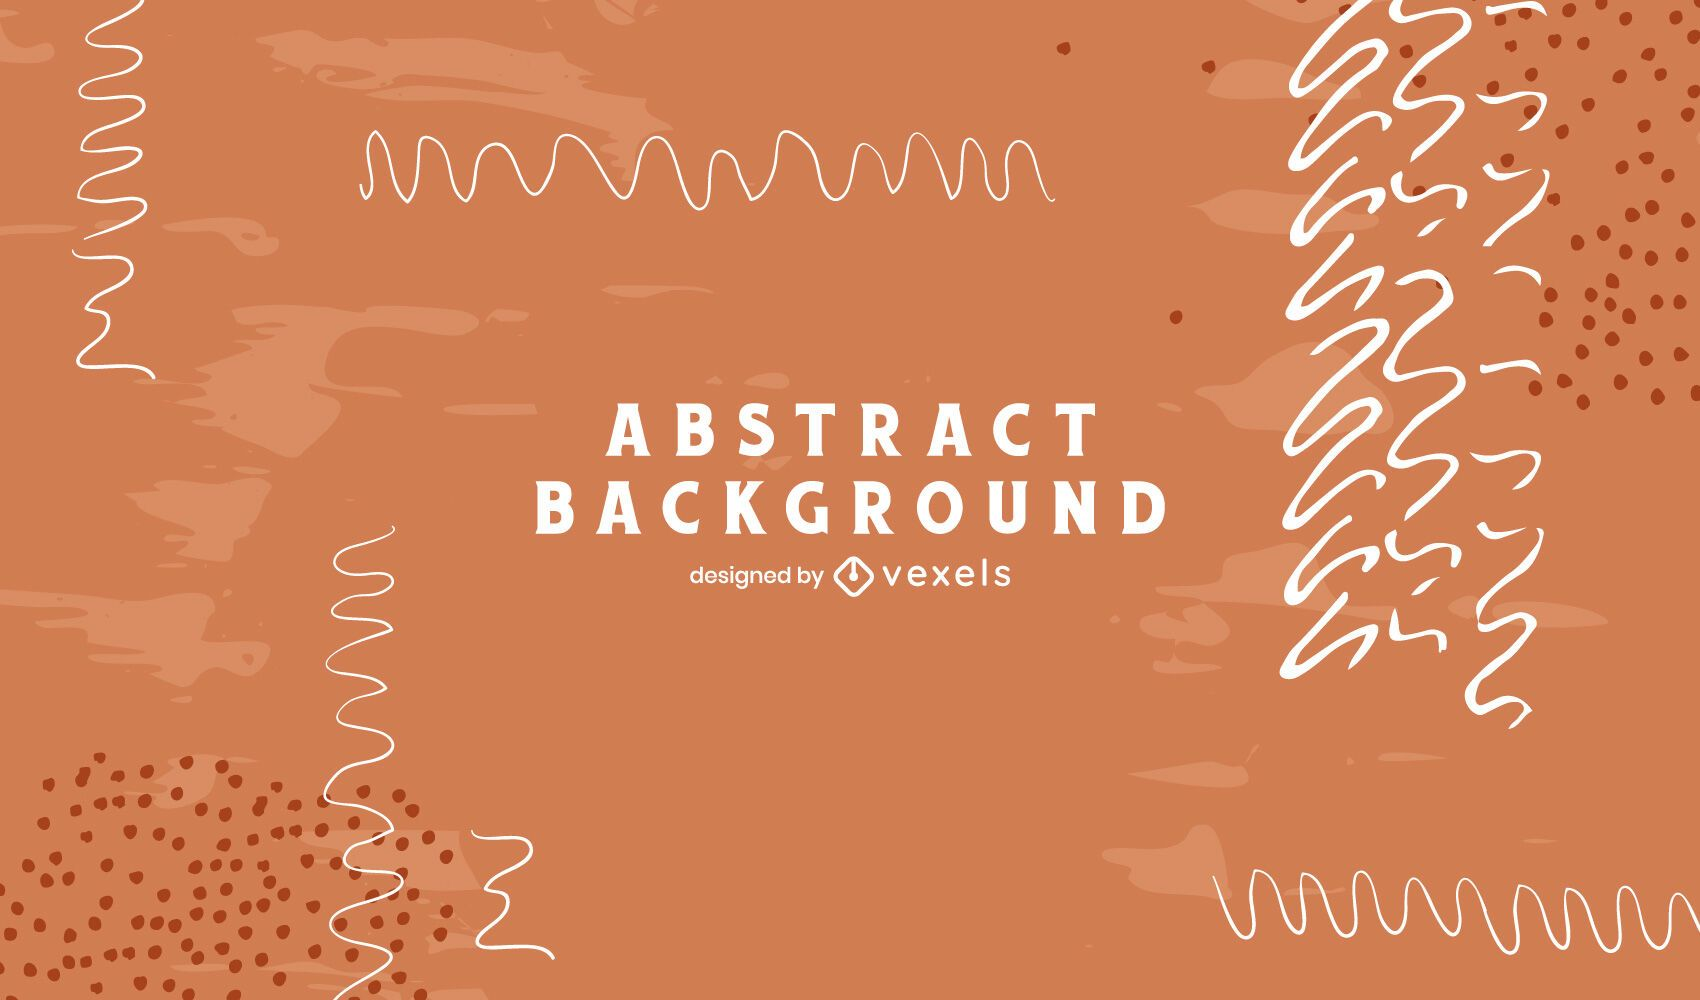 Artistic abstract lines background design